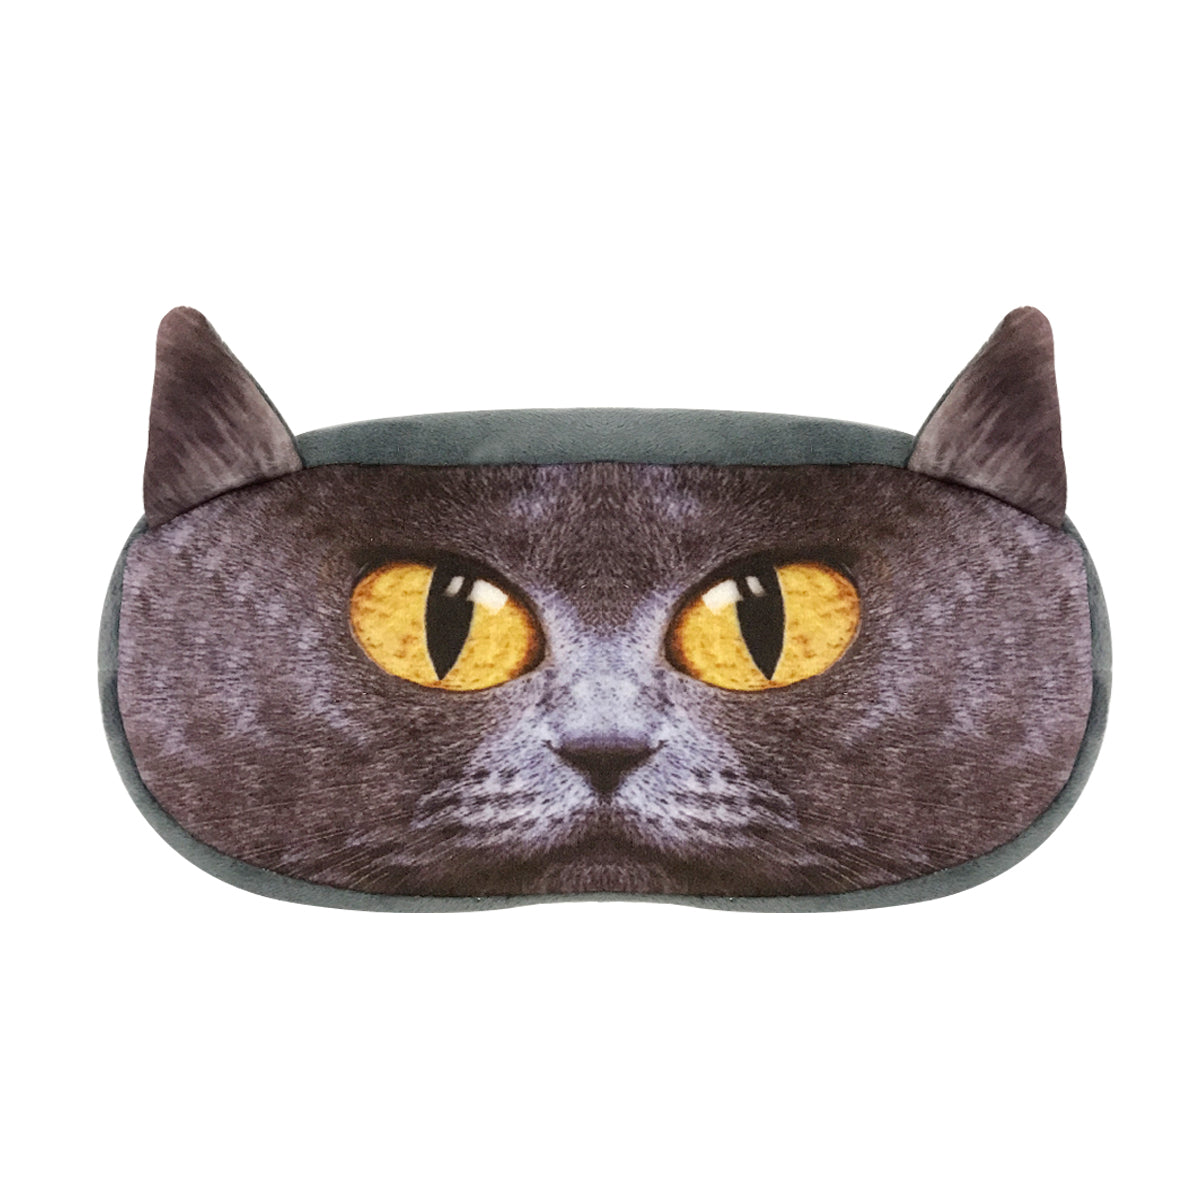 Wrapables Cat Face Zippered Pencil Case (Set of 2)